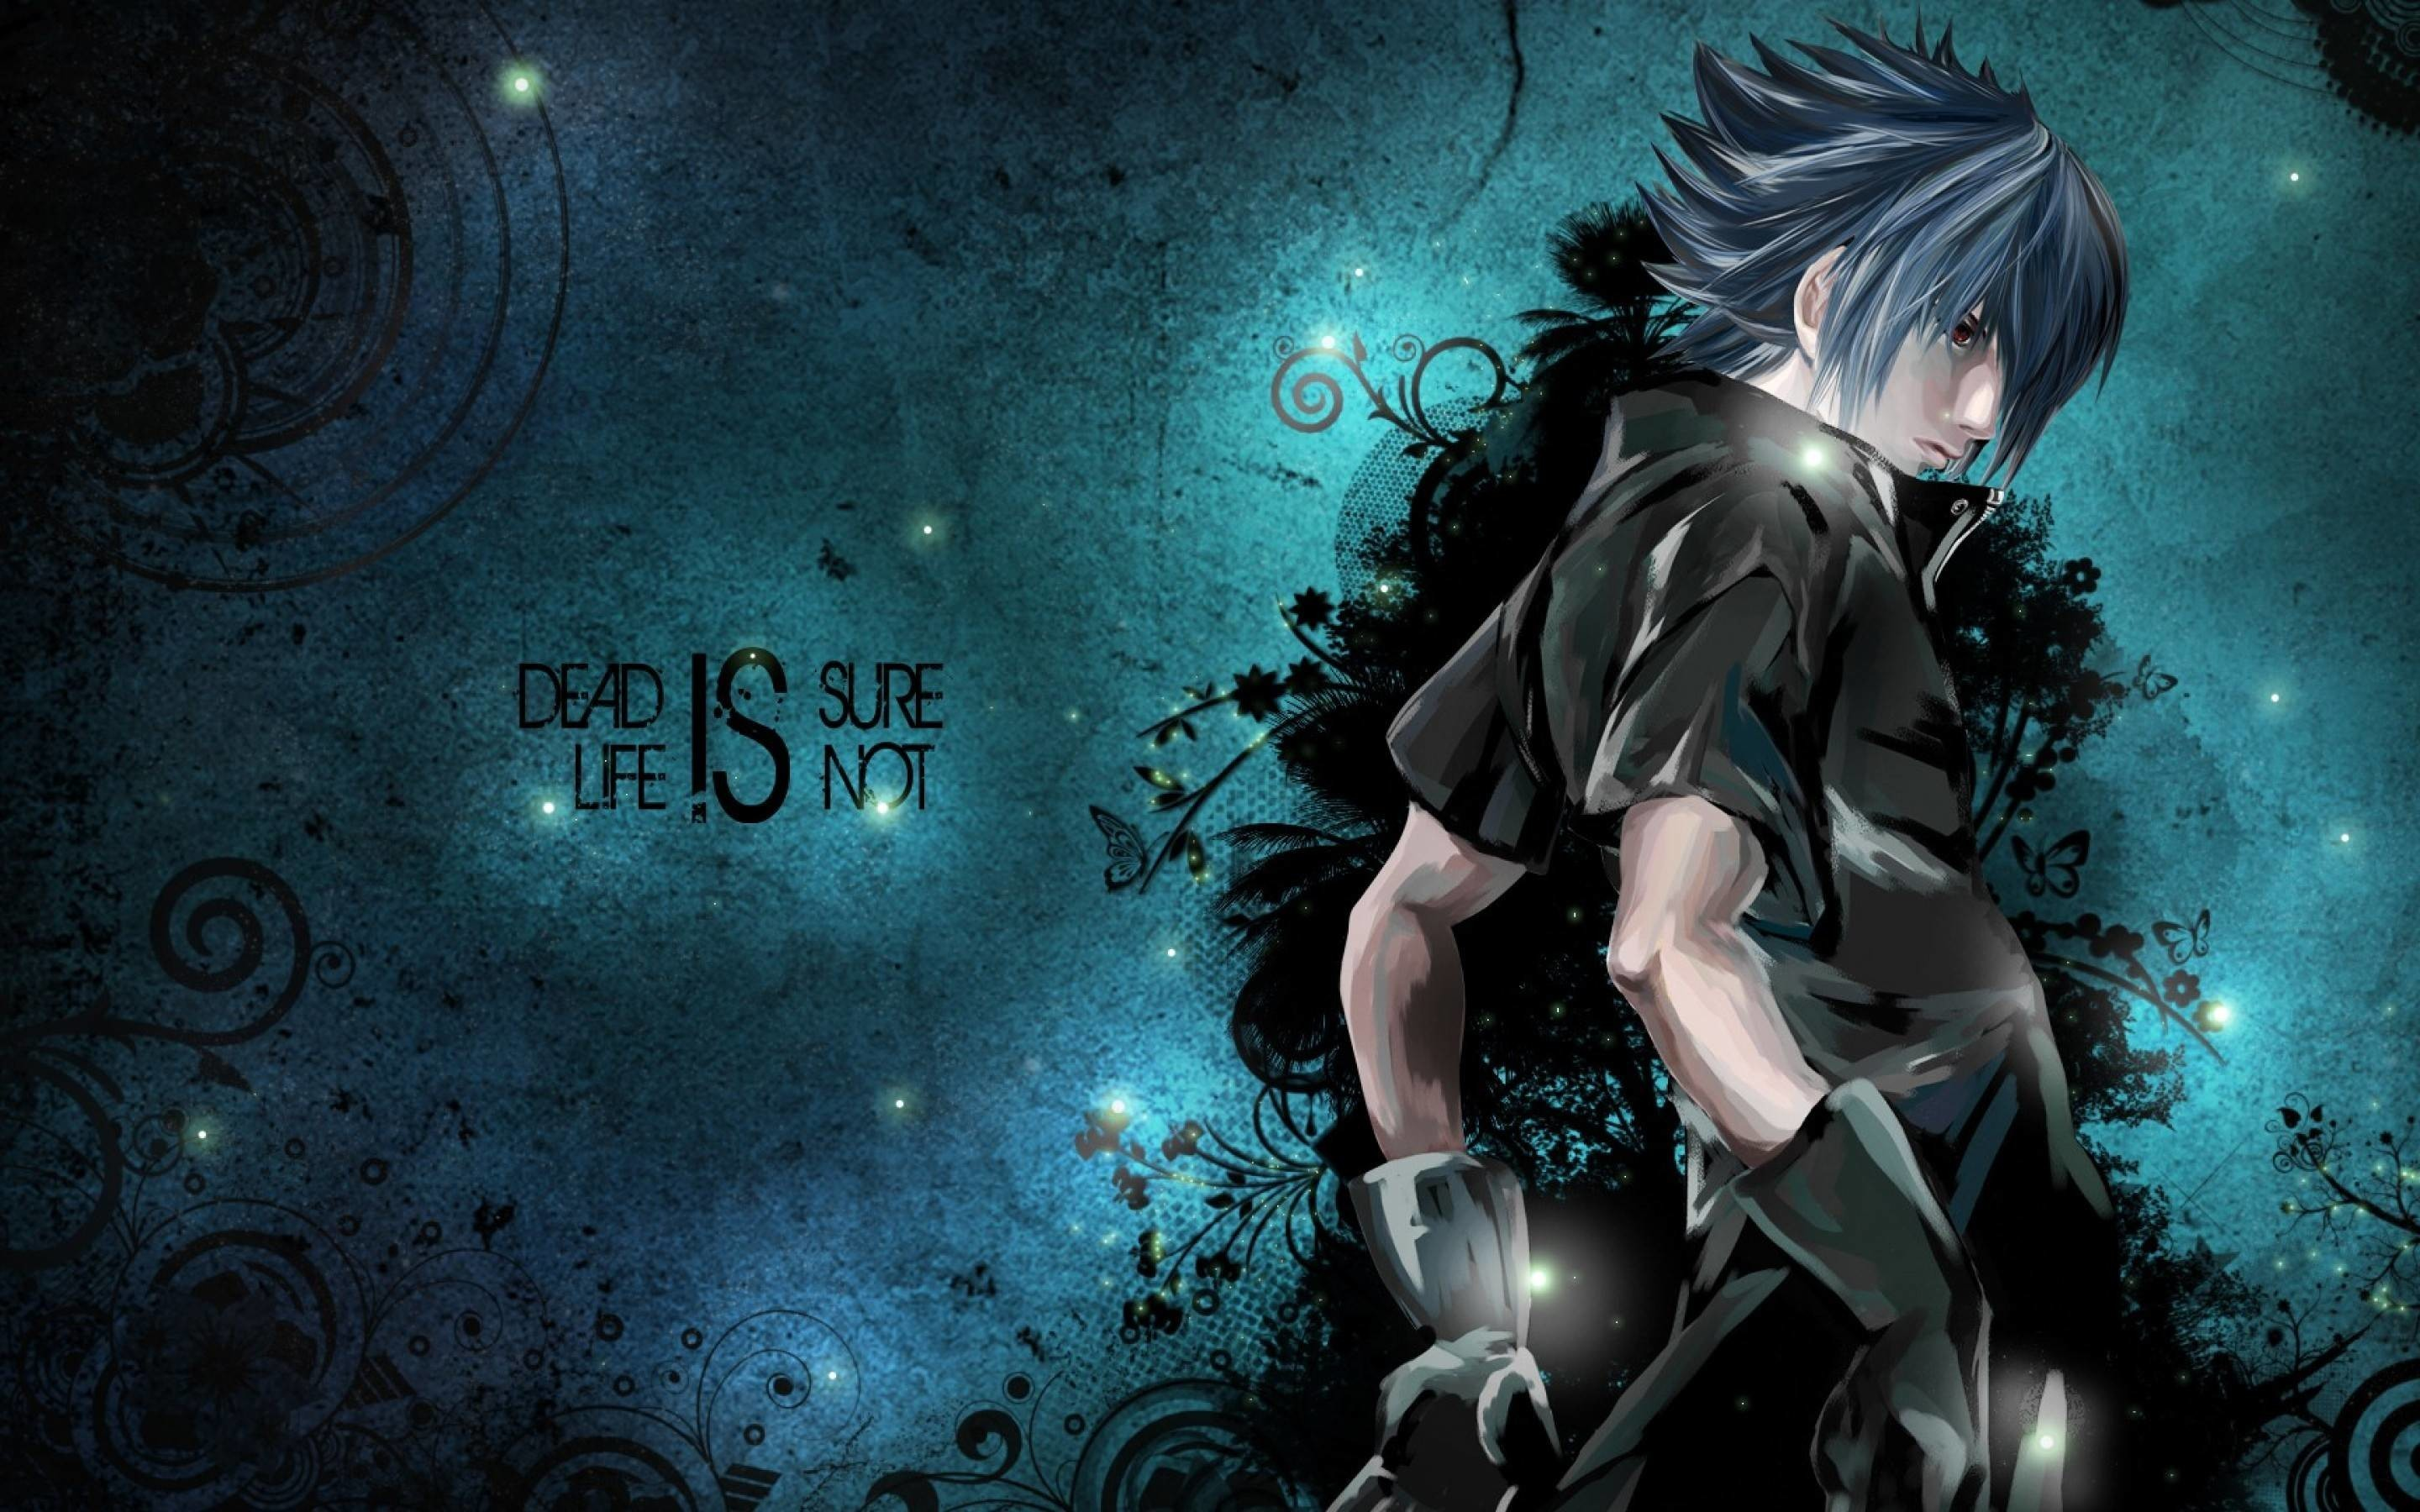 Anime Wallpaper 1920x1080 Posted By Zoey Tremblay